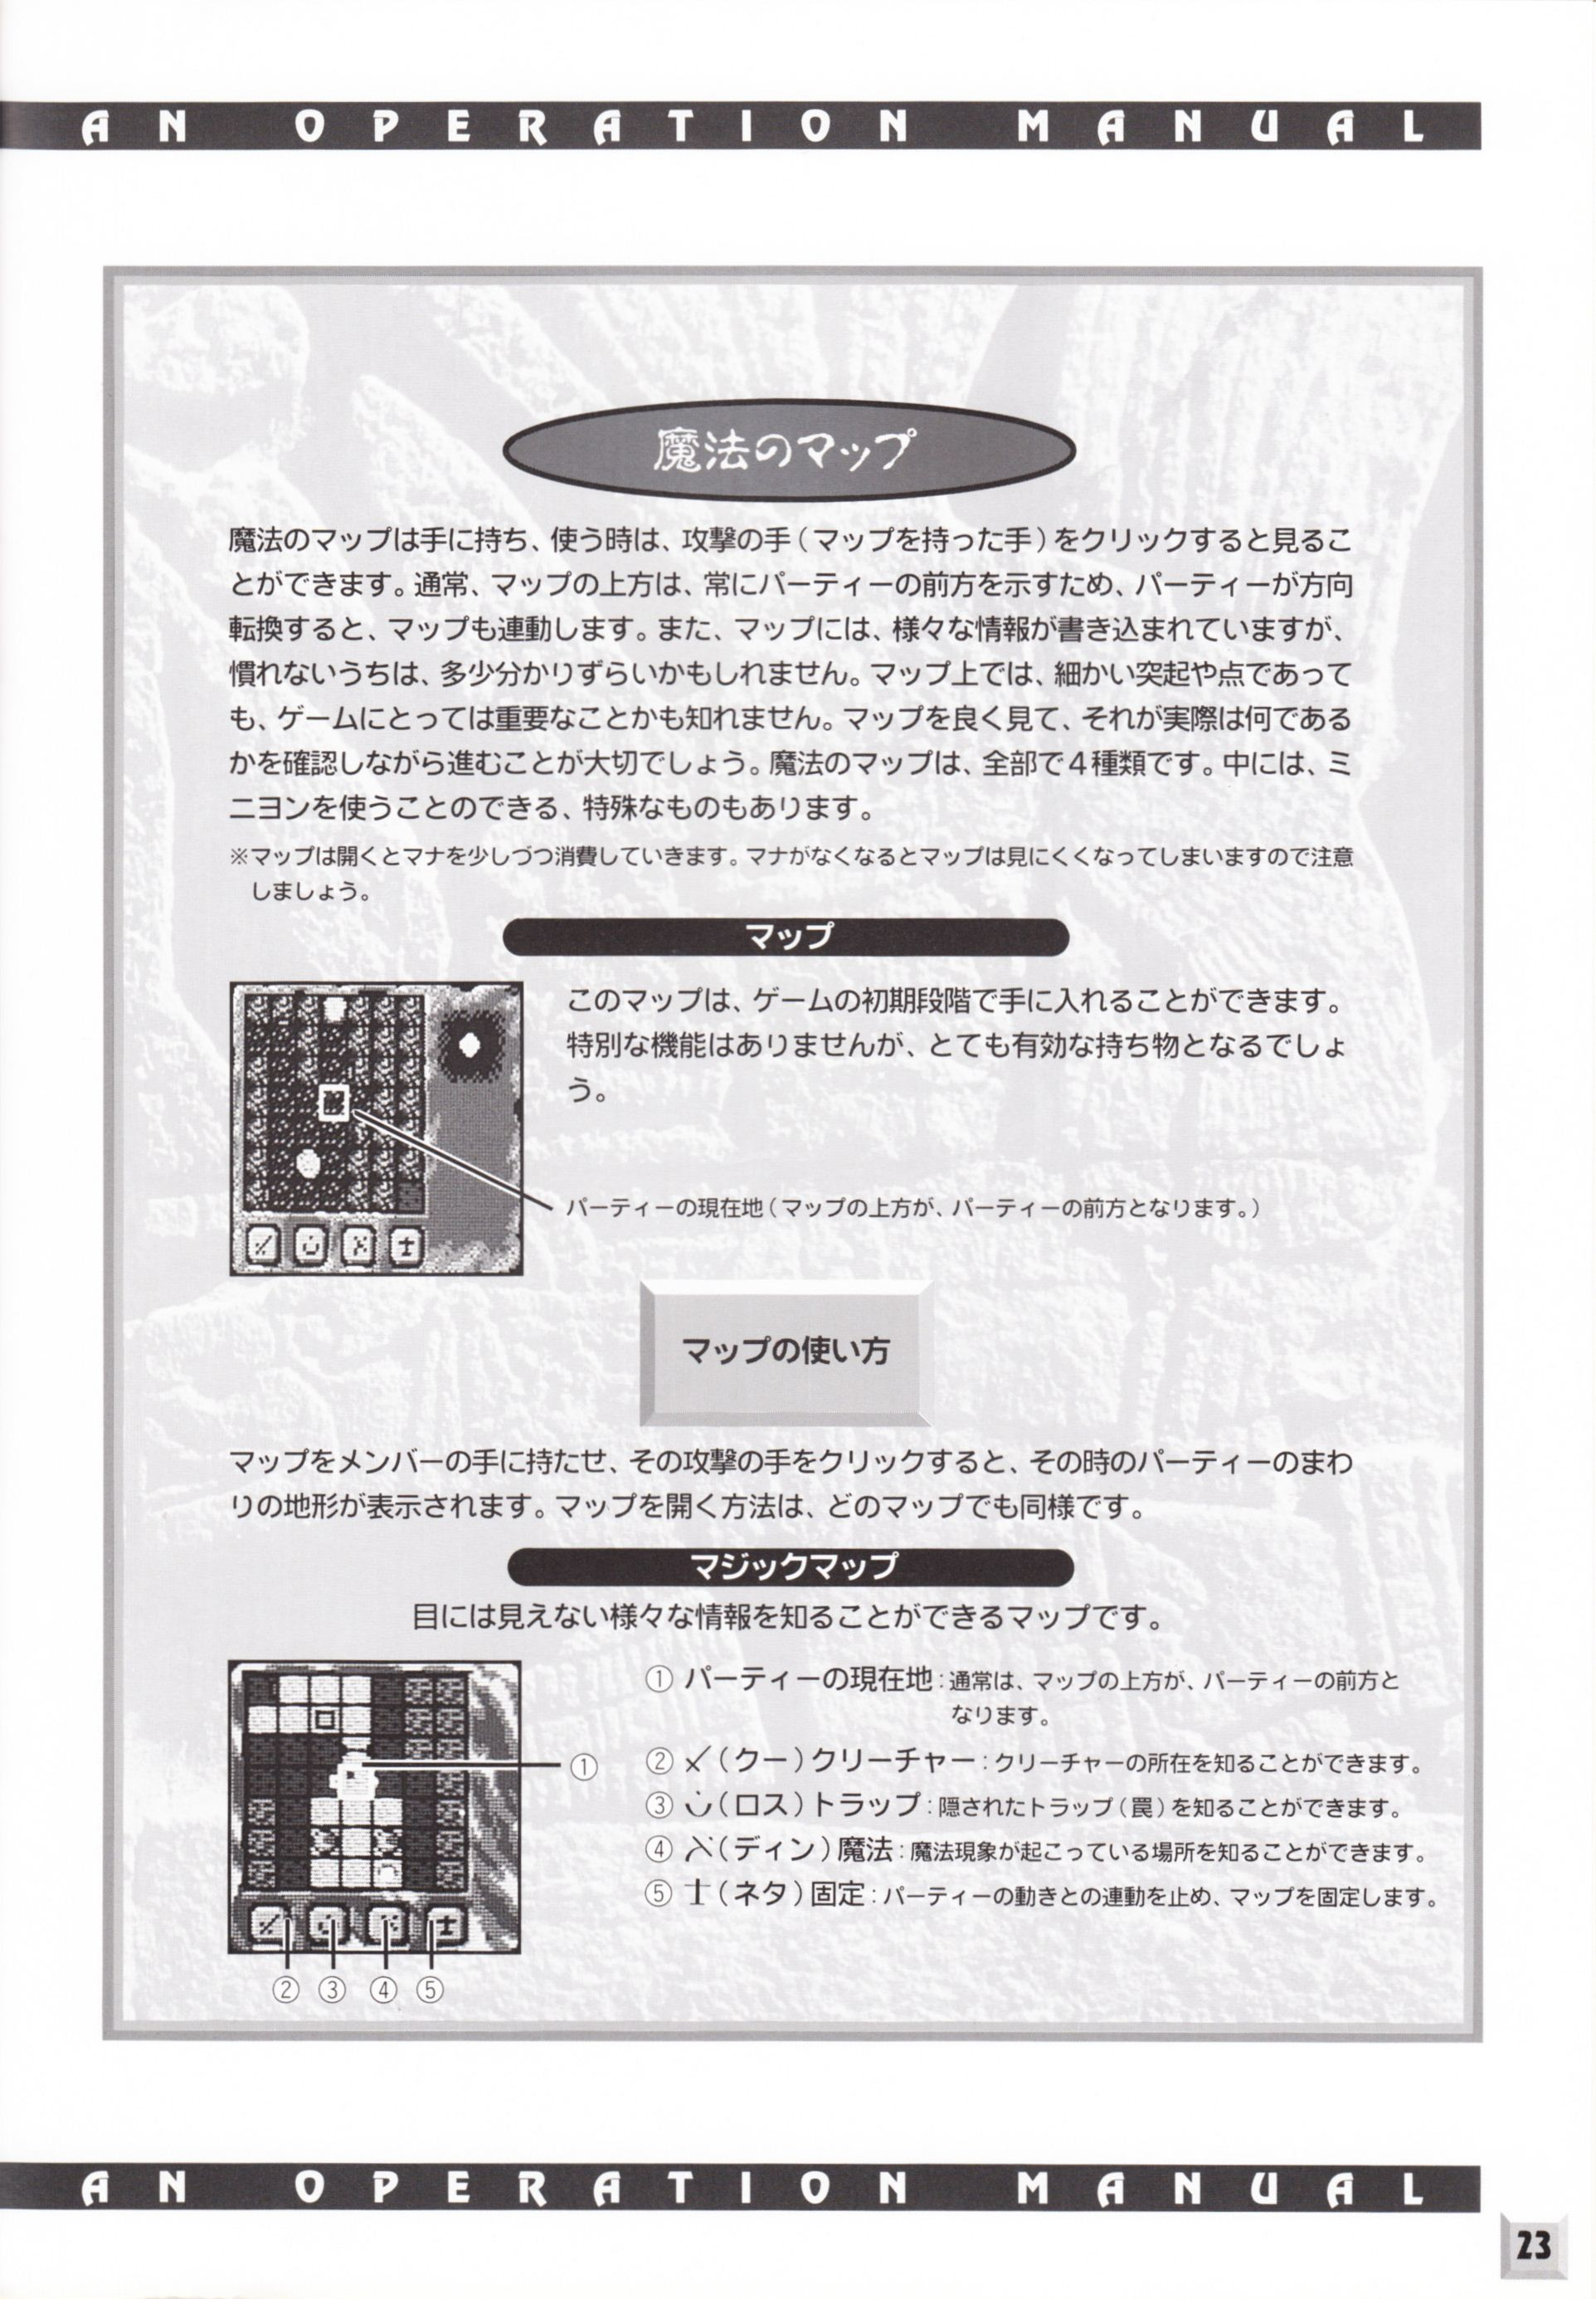 Game - Dungeon Master II - JP - PC-9801 - 3.5-inch - An Operation Manual - Page 025 - Scan